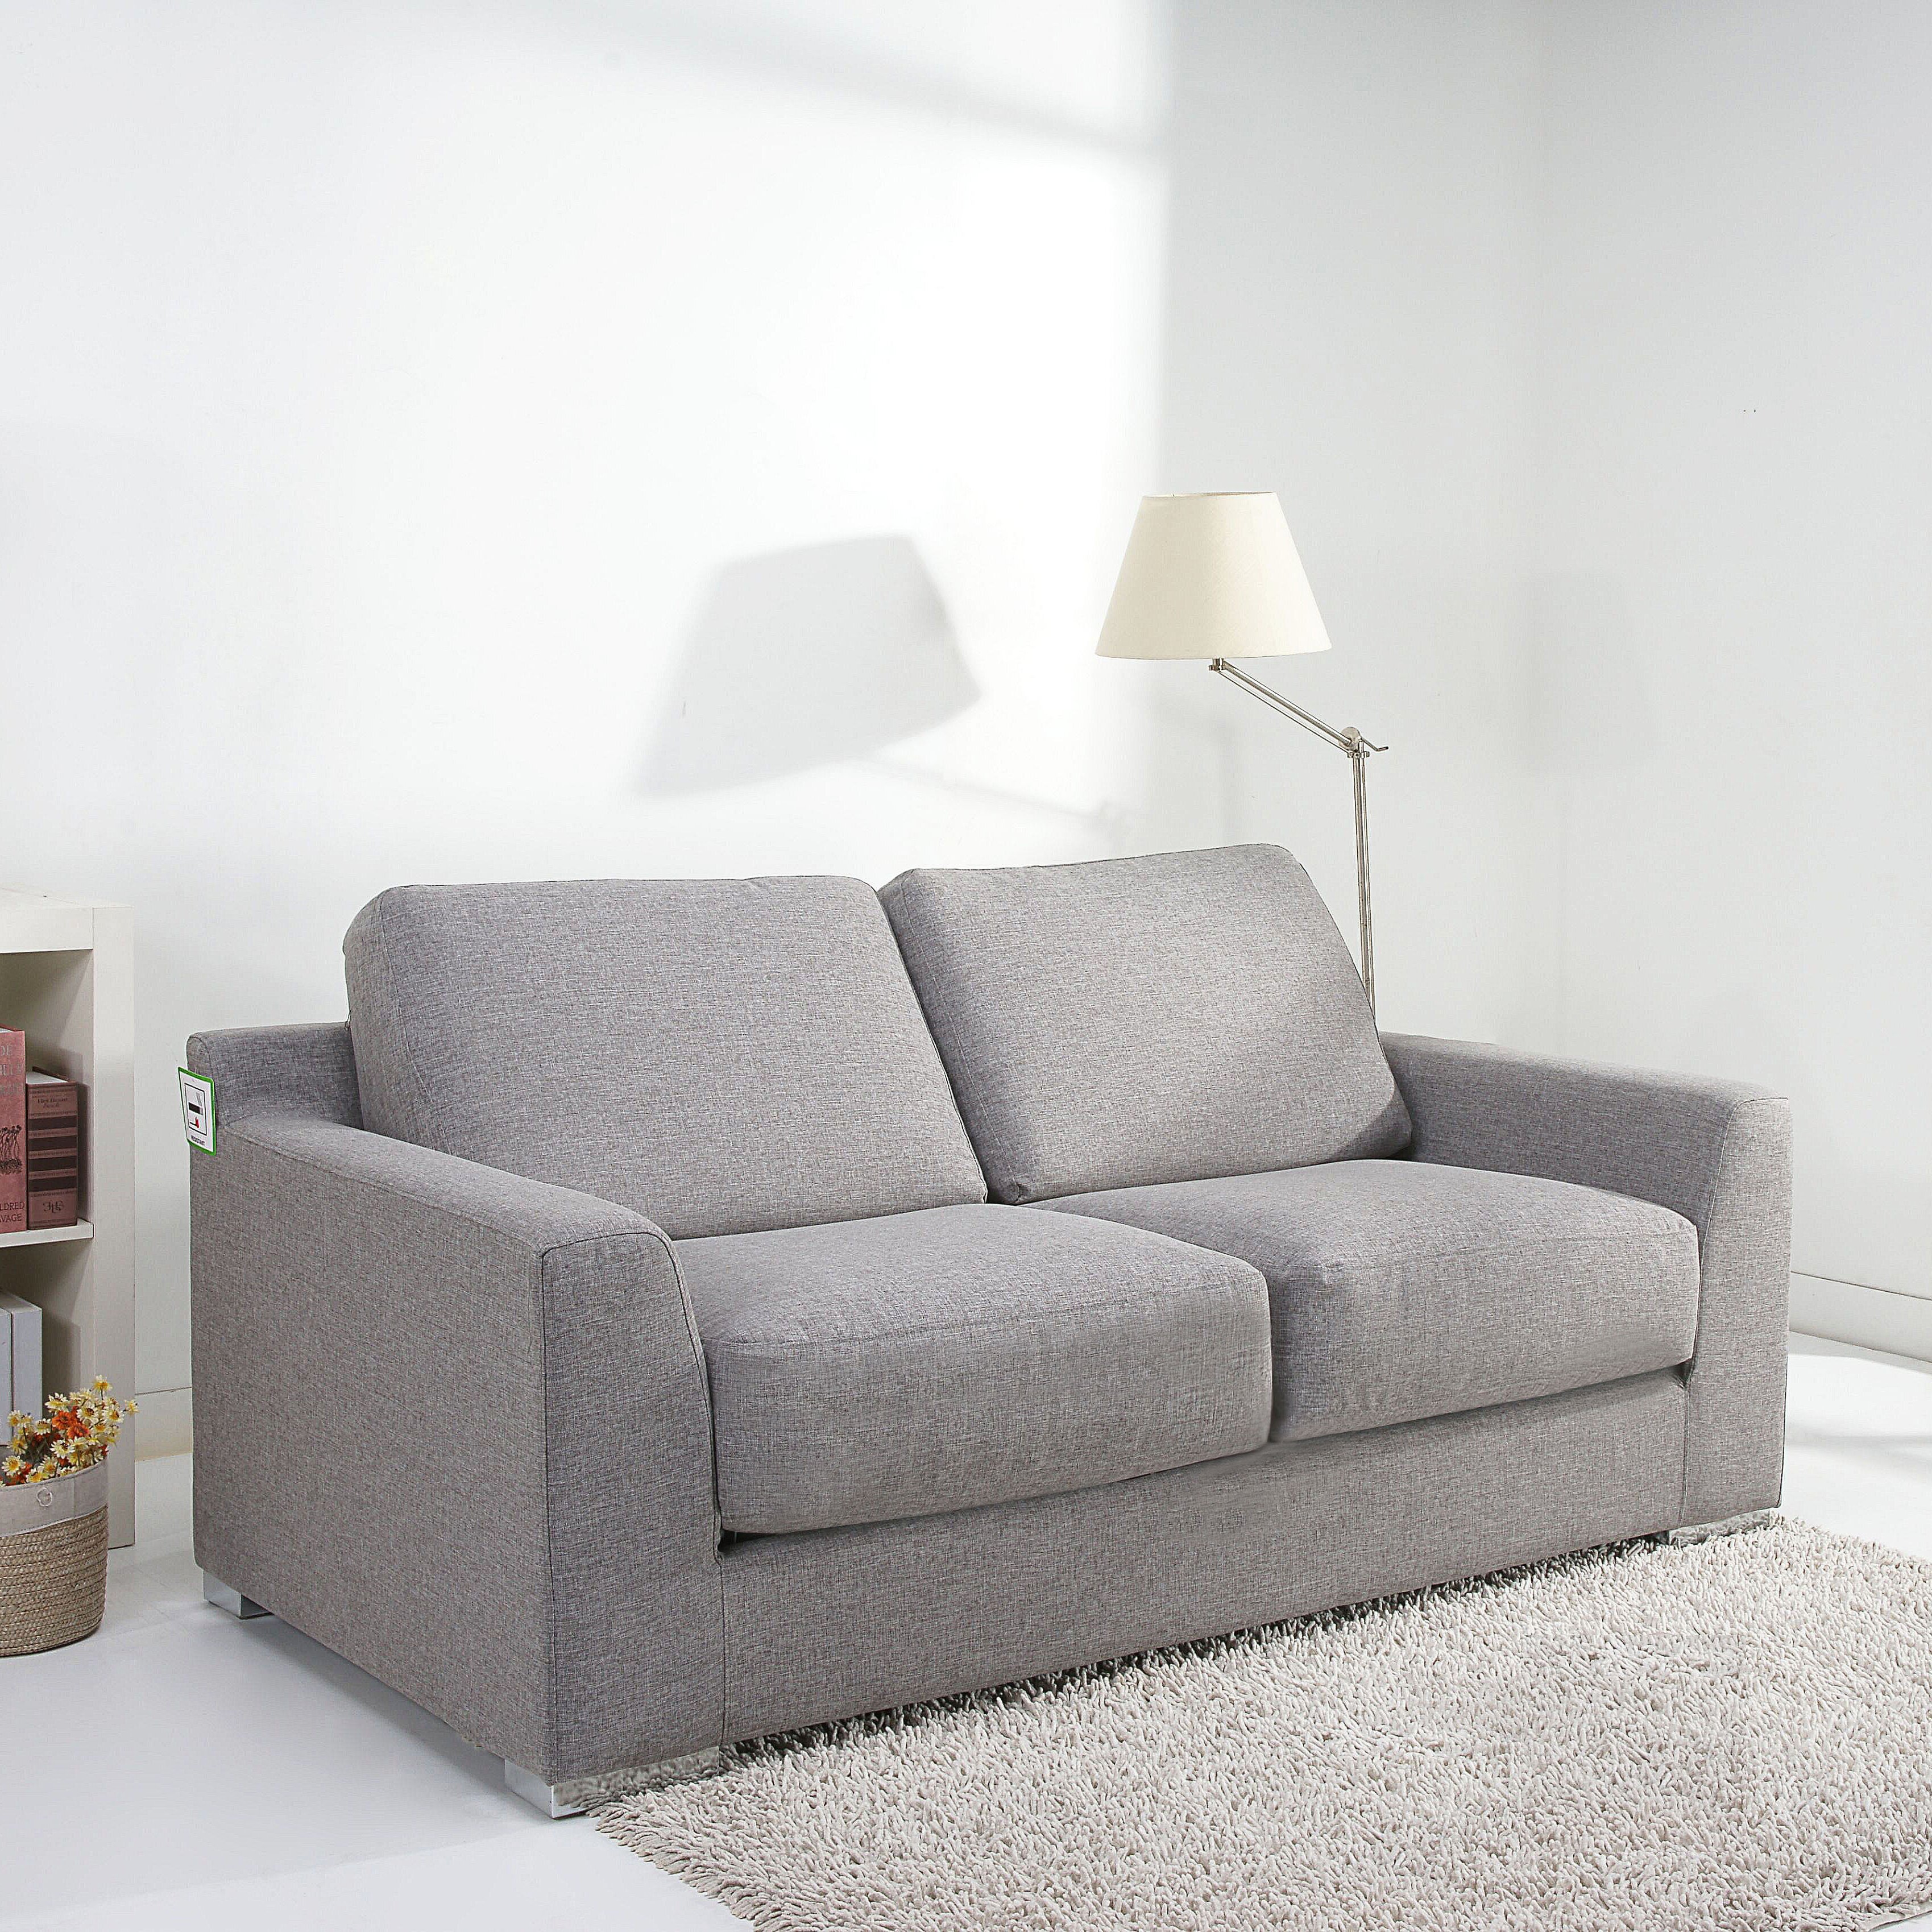 Leader Lifestyle Paris 2 Seater Fold Out Sofa Bed